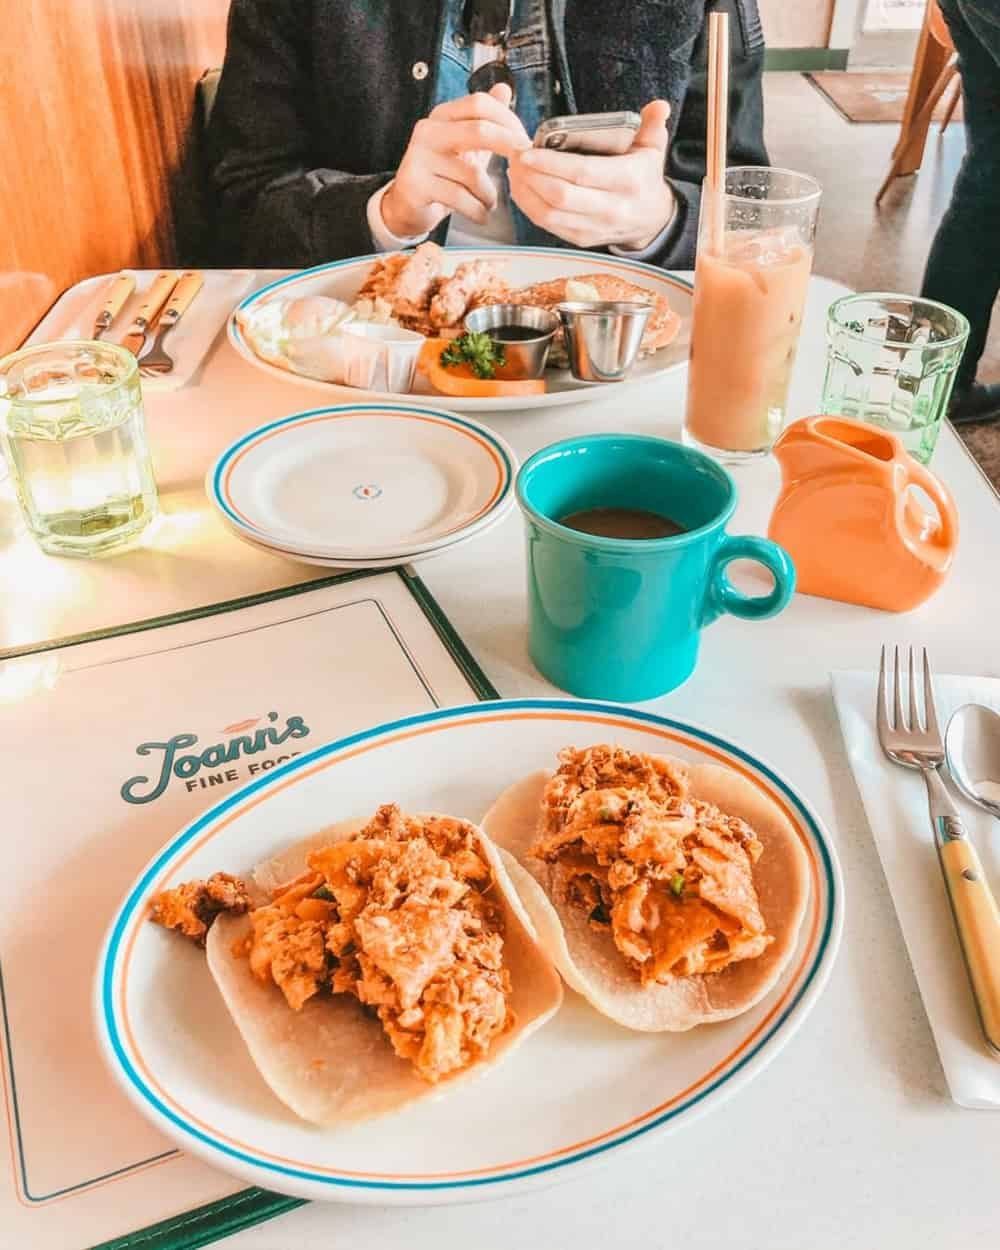 Joann's Fine Foods breakfast tacos in Austin